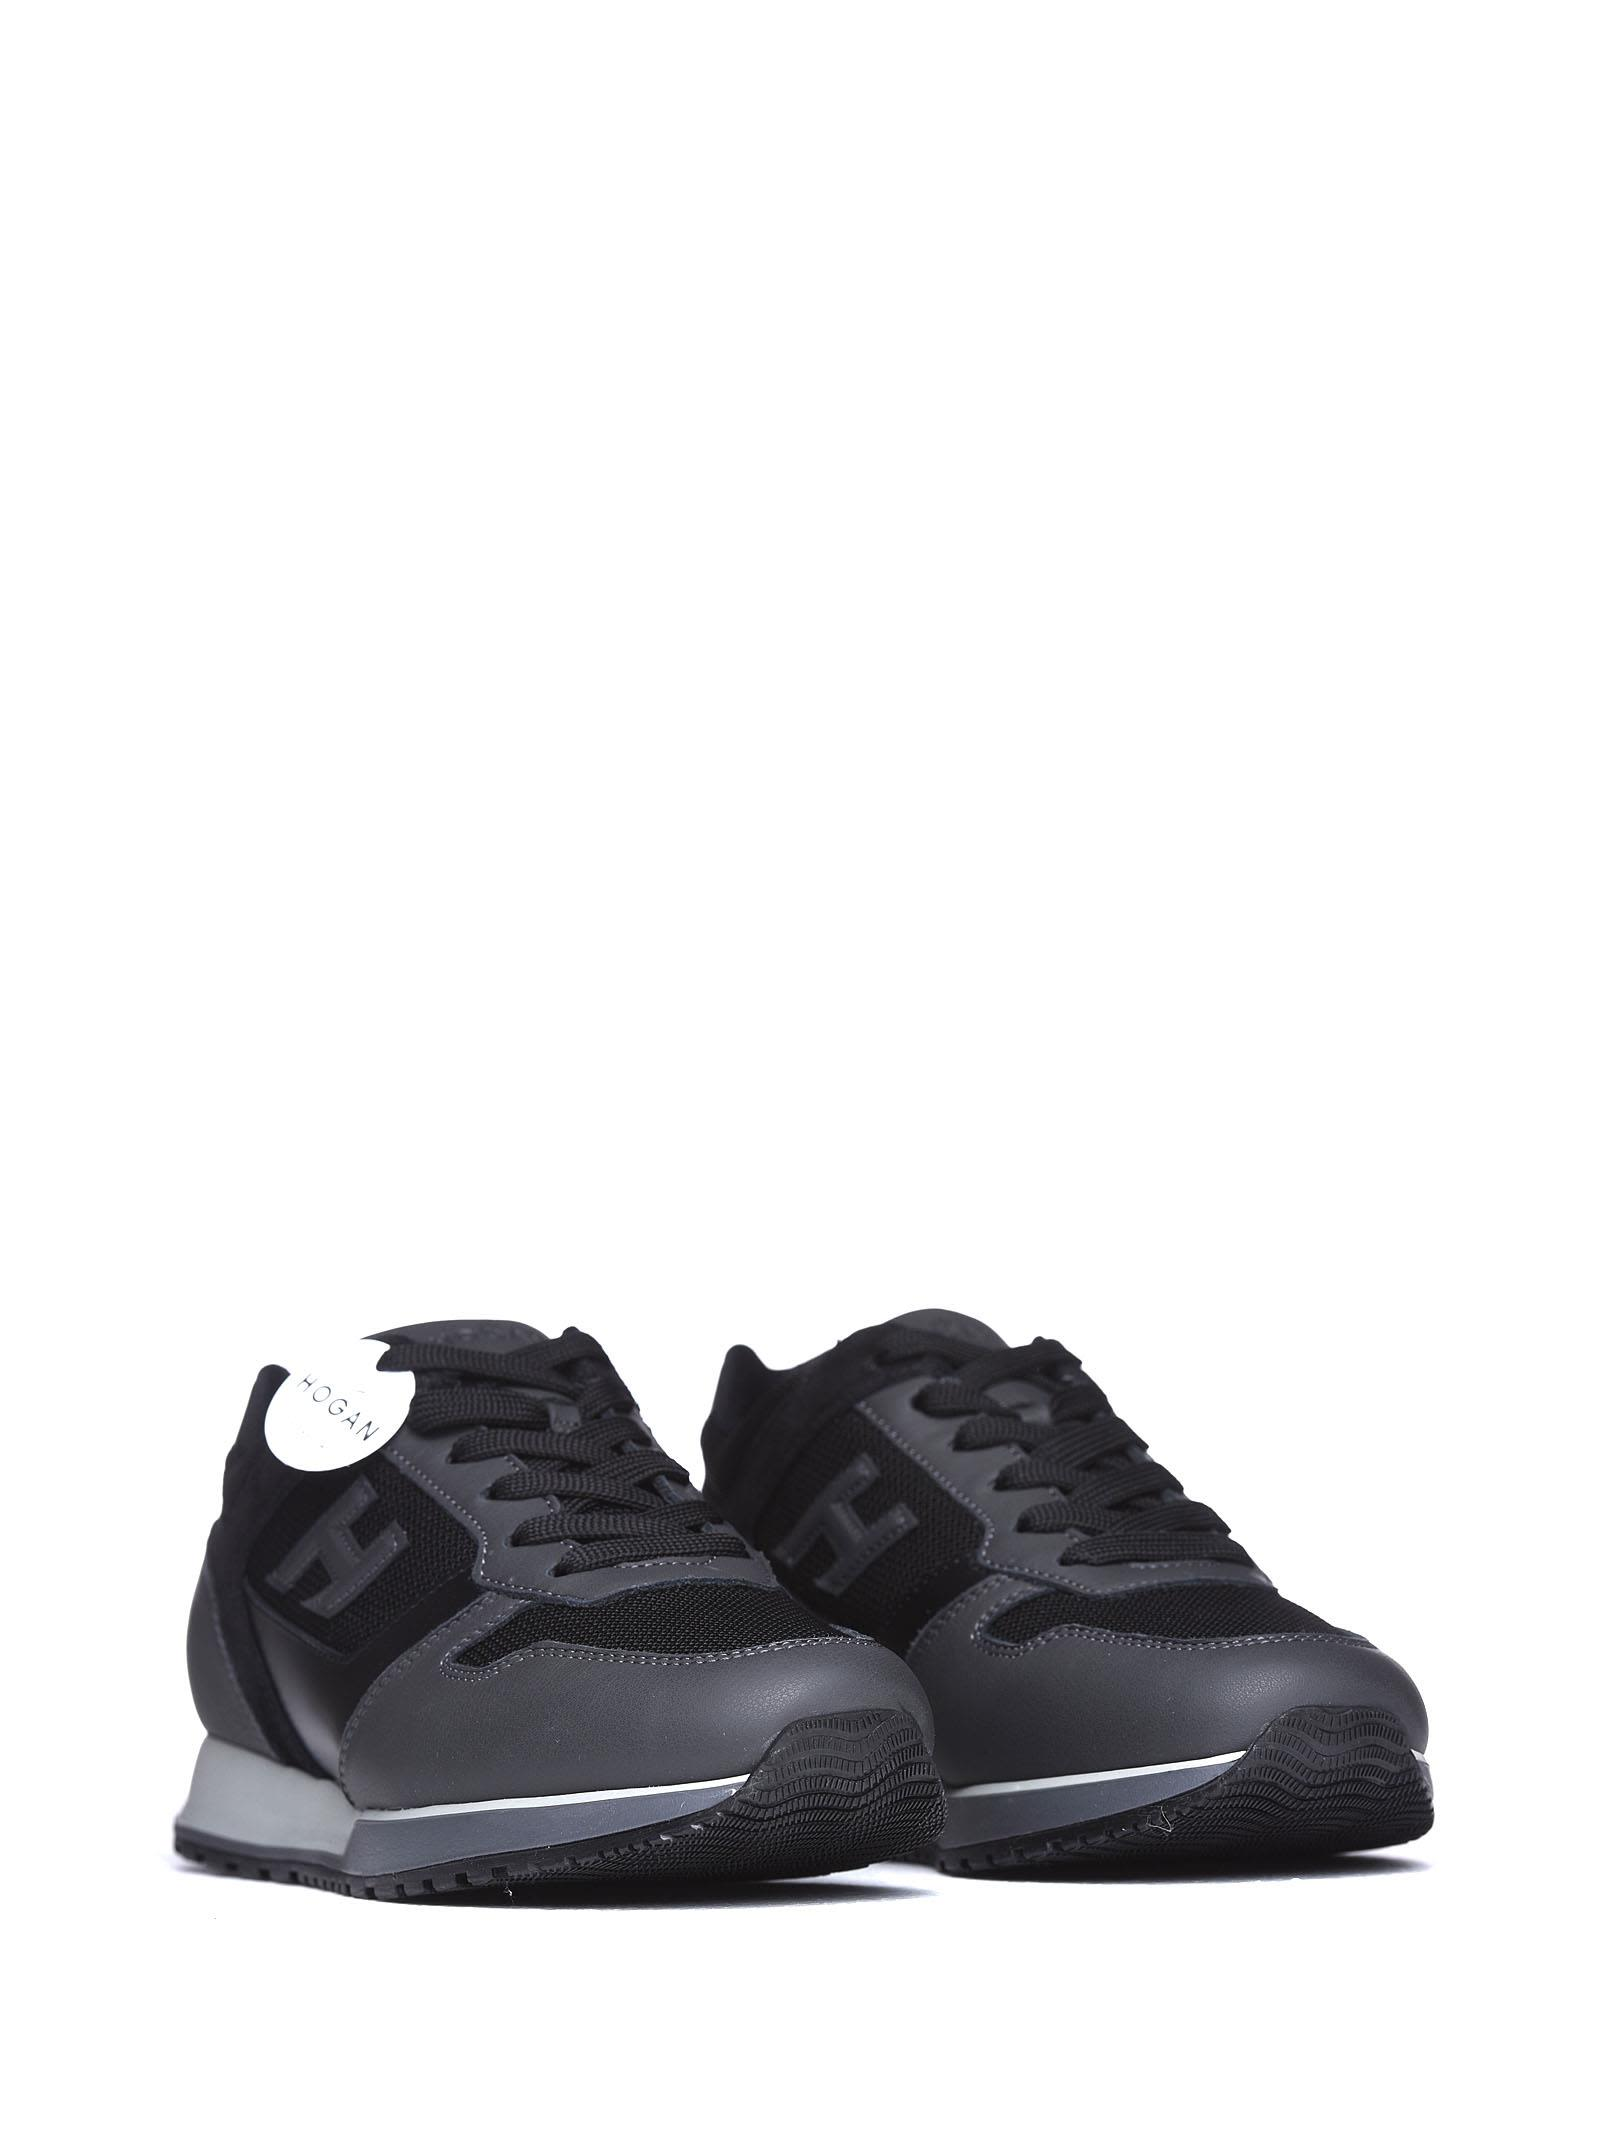 Hogan Hogan H321 Grey And Black Sneakers - NERO CATRAME - 10704086 ... 9b0d38bcd89d